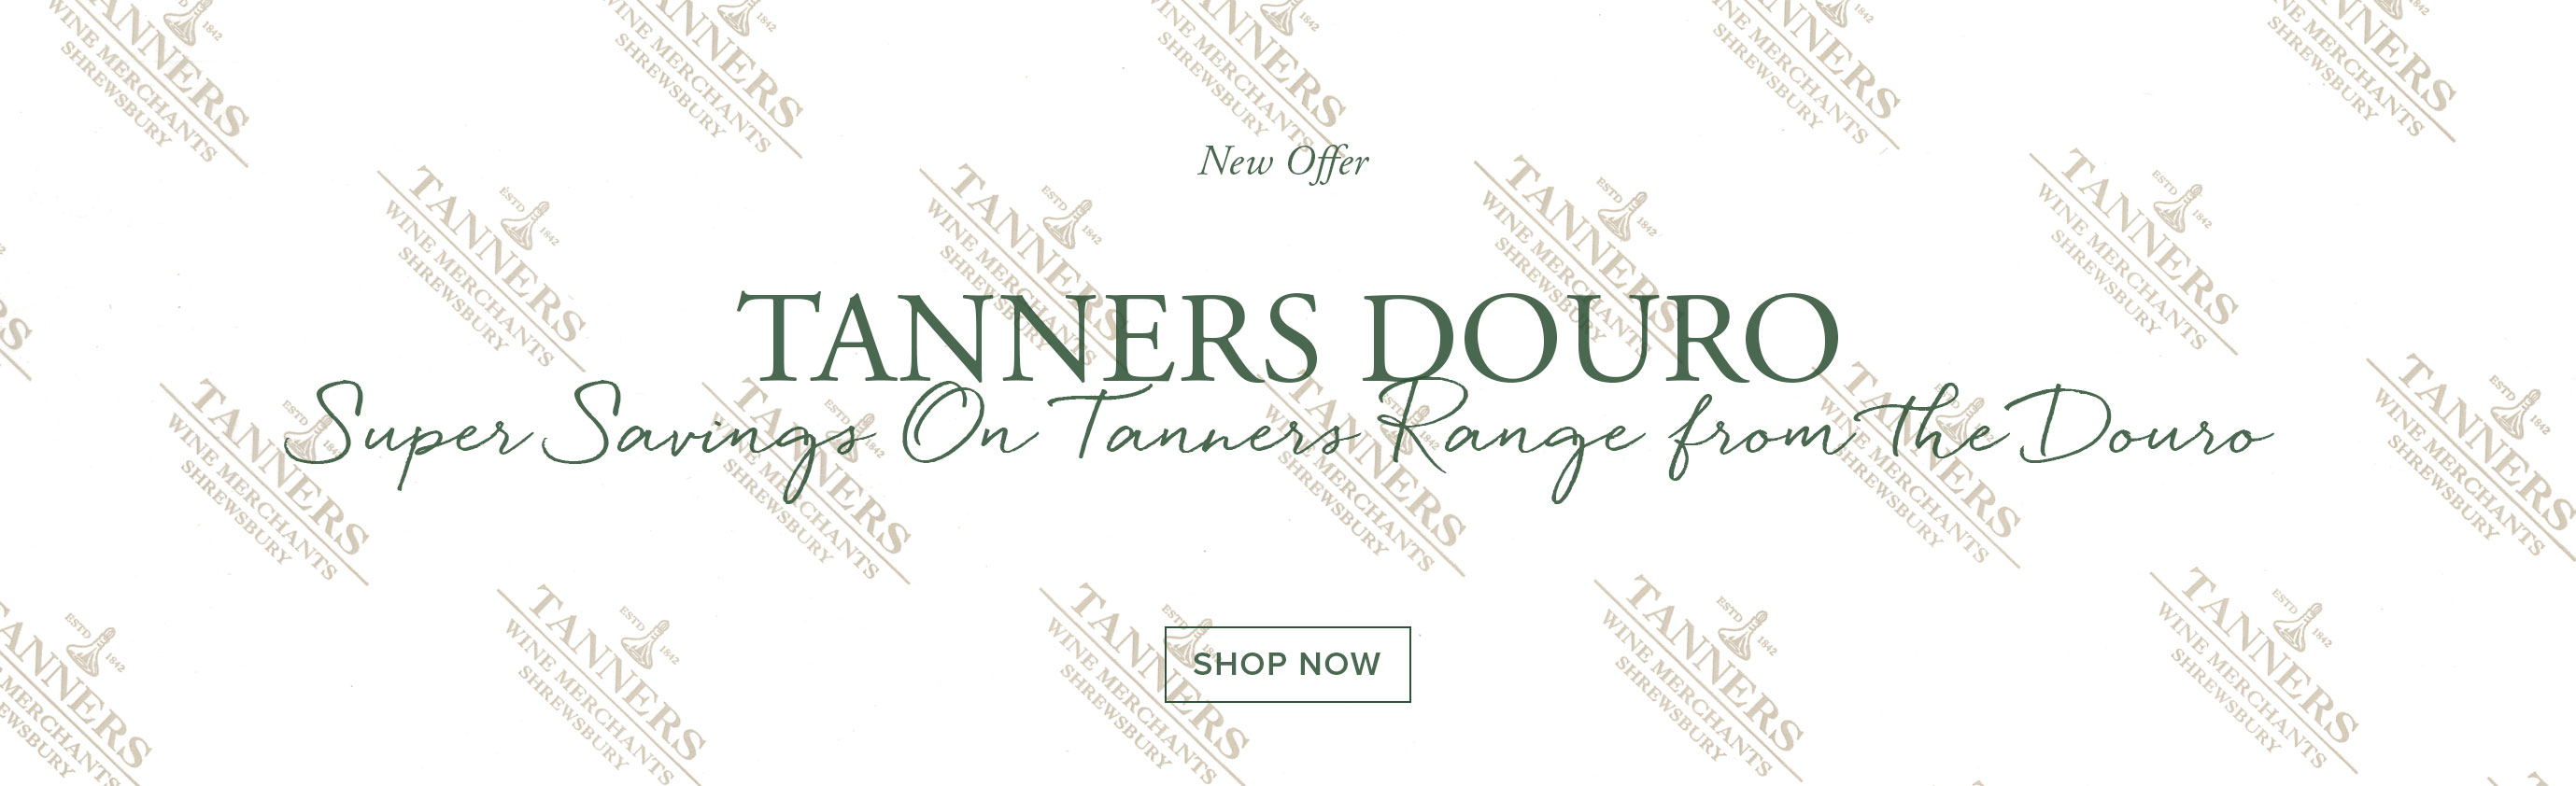 New Offer - Tanner Own Label Douro